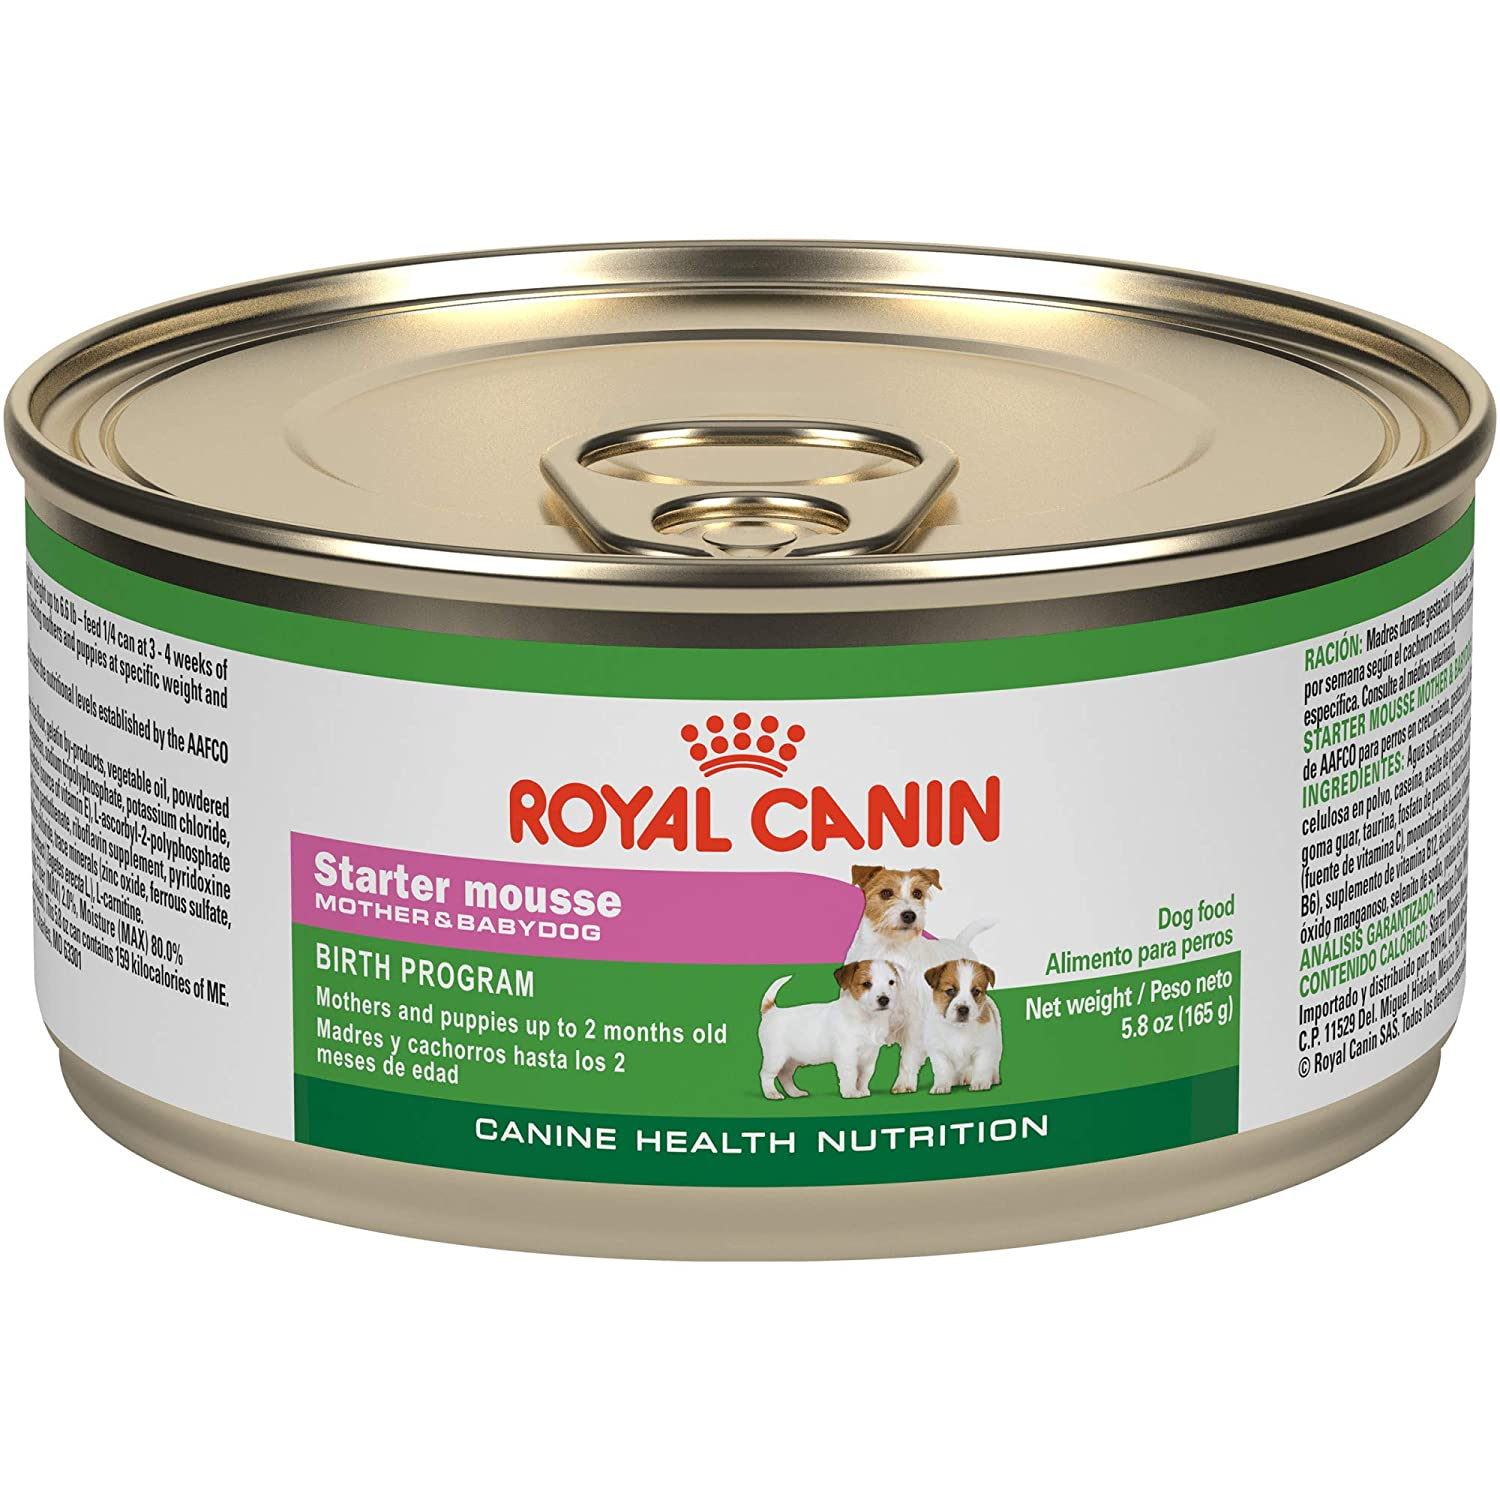 Royal Canin Starter Mousse For Mother And Baby Dog Canned Dog Food, 5.8-Ounce, 3-Can